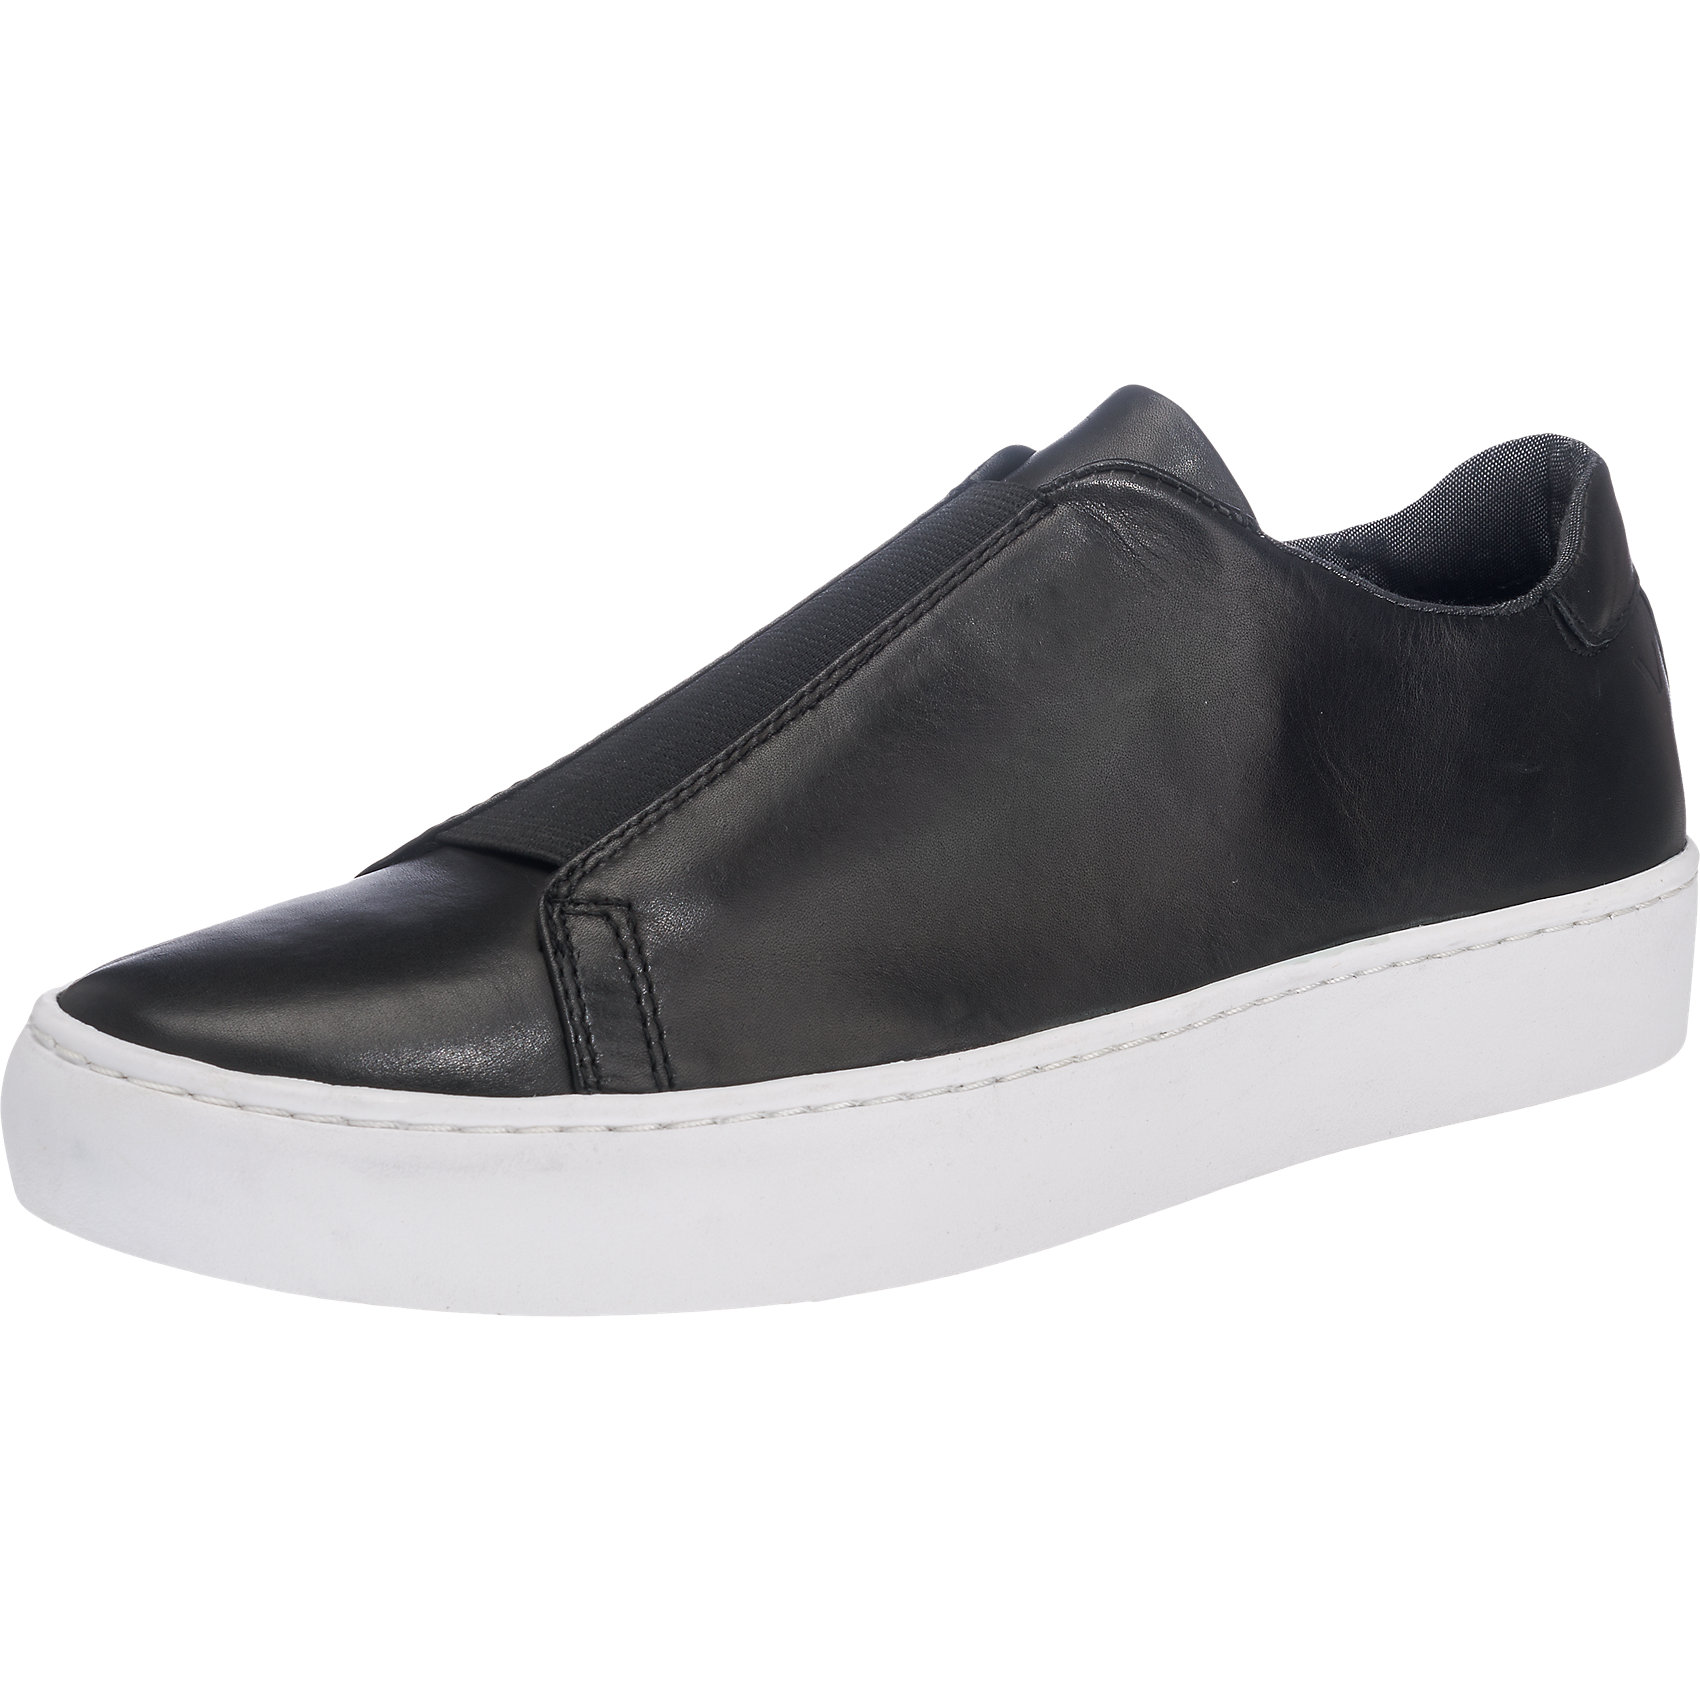 Vagabond Women's Low Top Sneakers Trainers